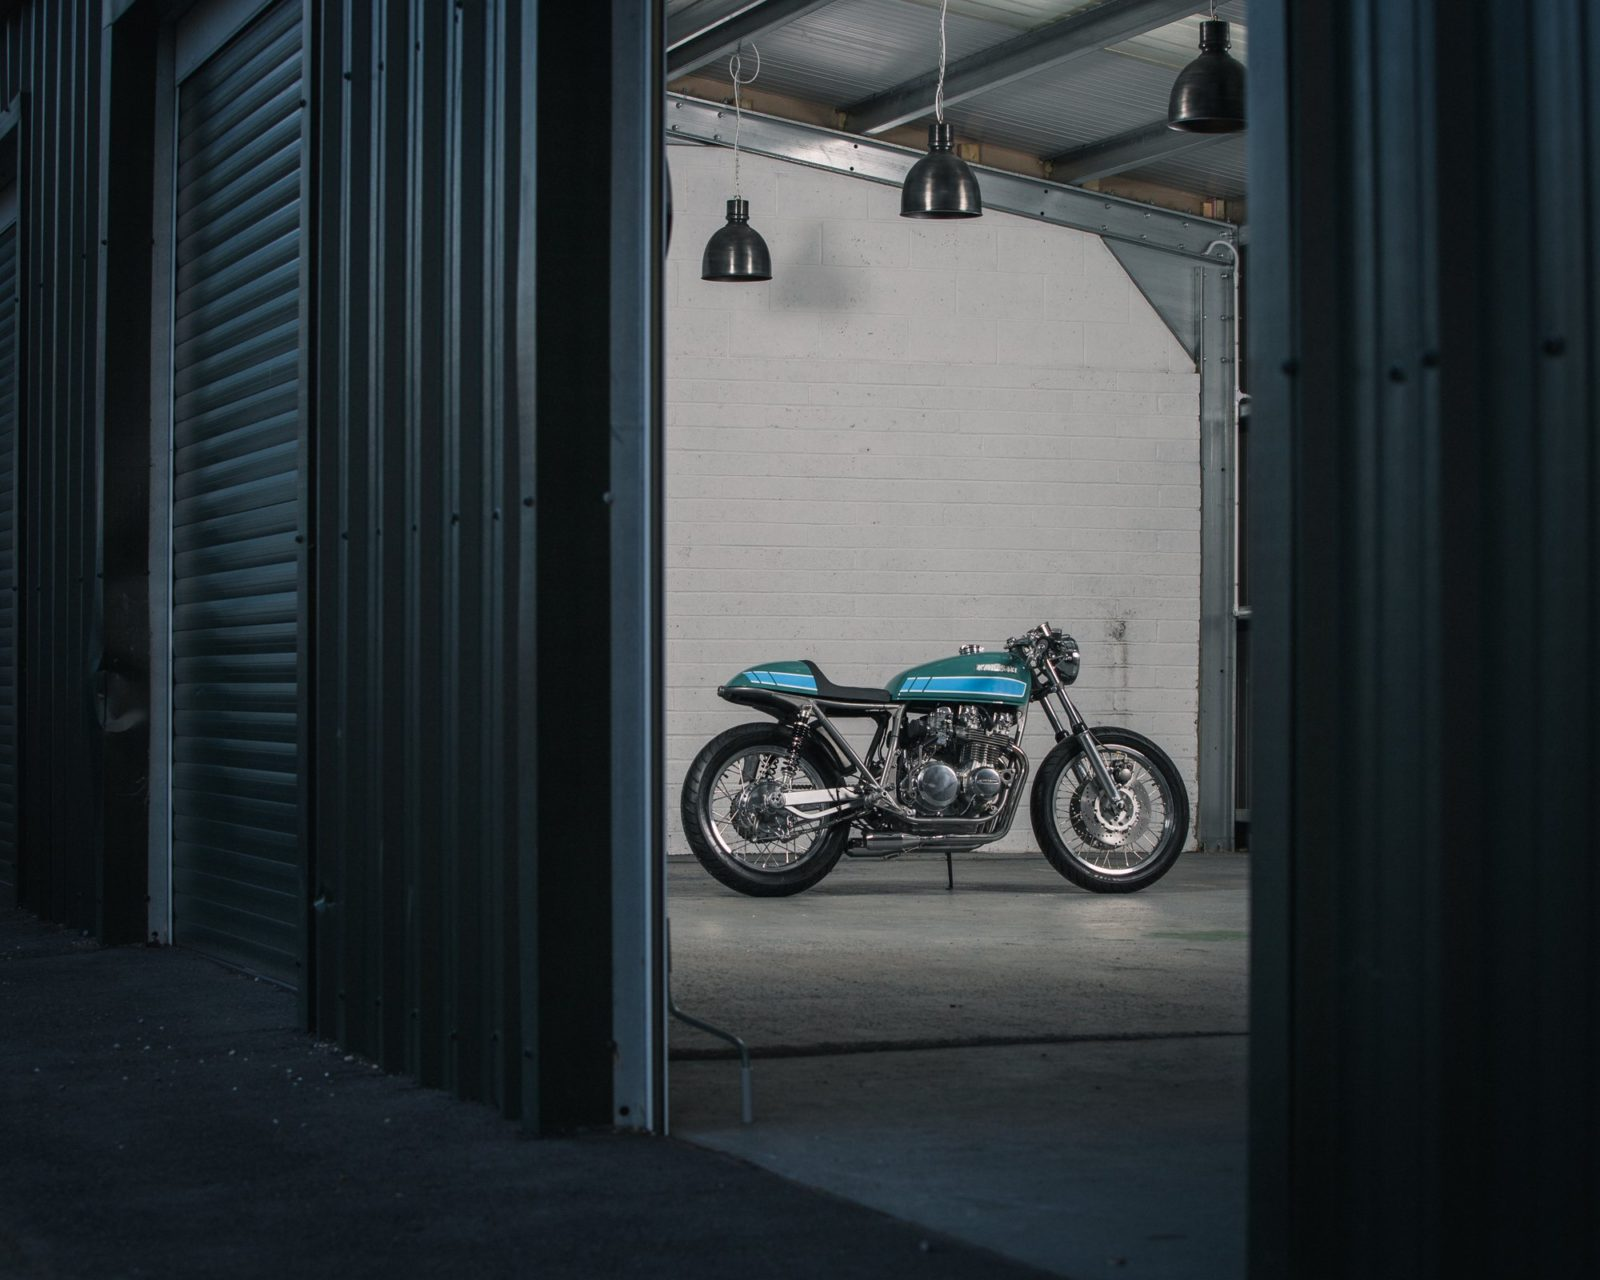 behold-a-mouth-watering-1976-kawasaki-z650-customized-by-a-former-blacksmith